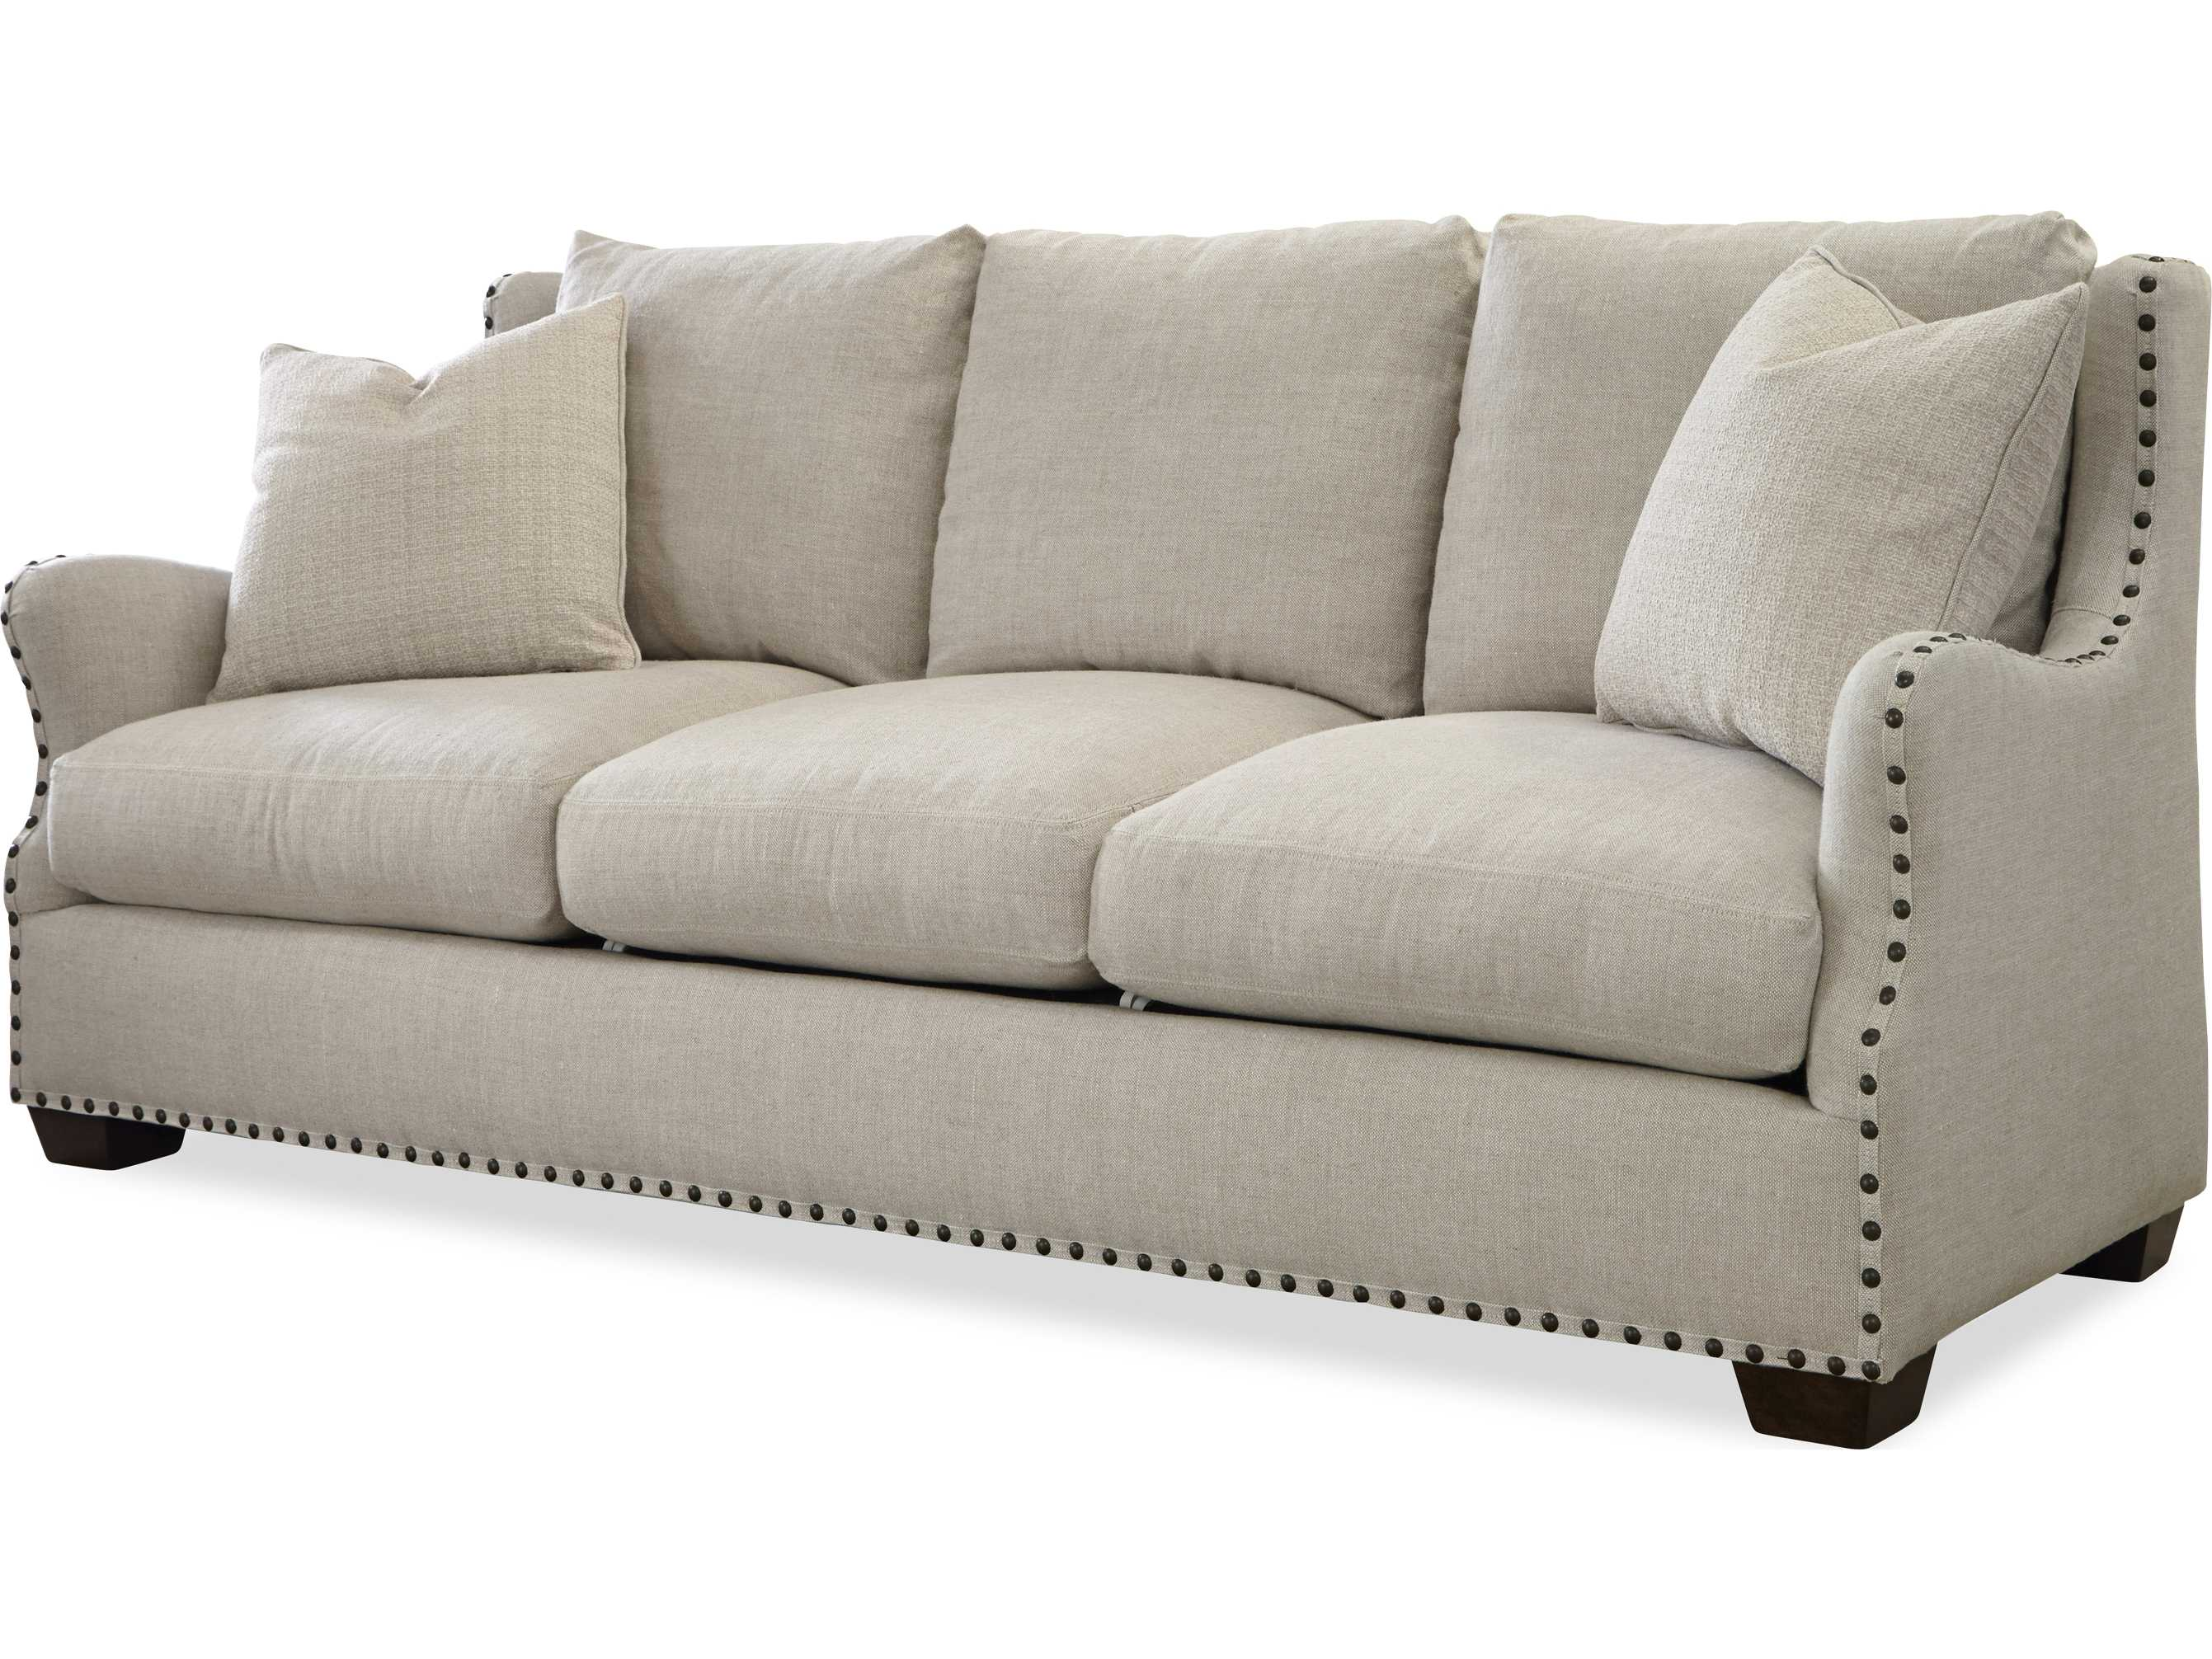 stem for couch top the sure find apartment sofa make comfortable most is you things base mota bamboo blog your loveseat to